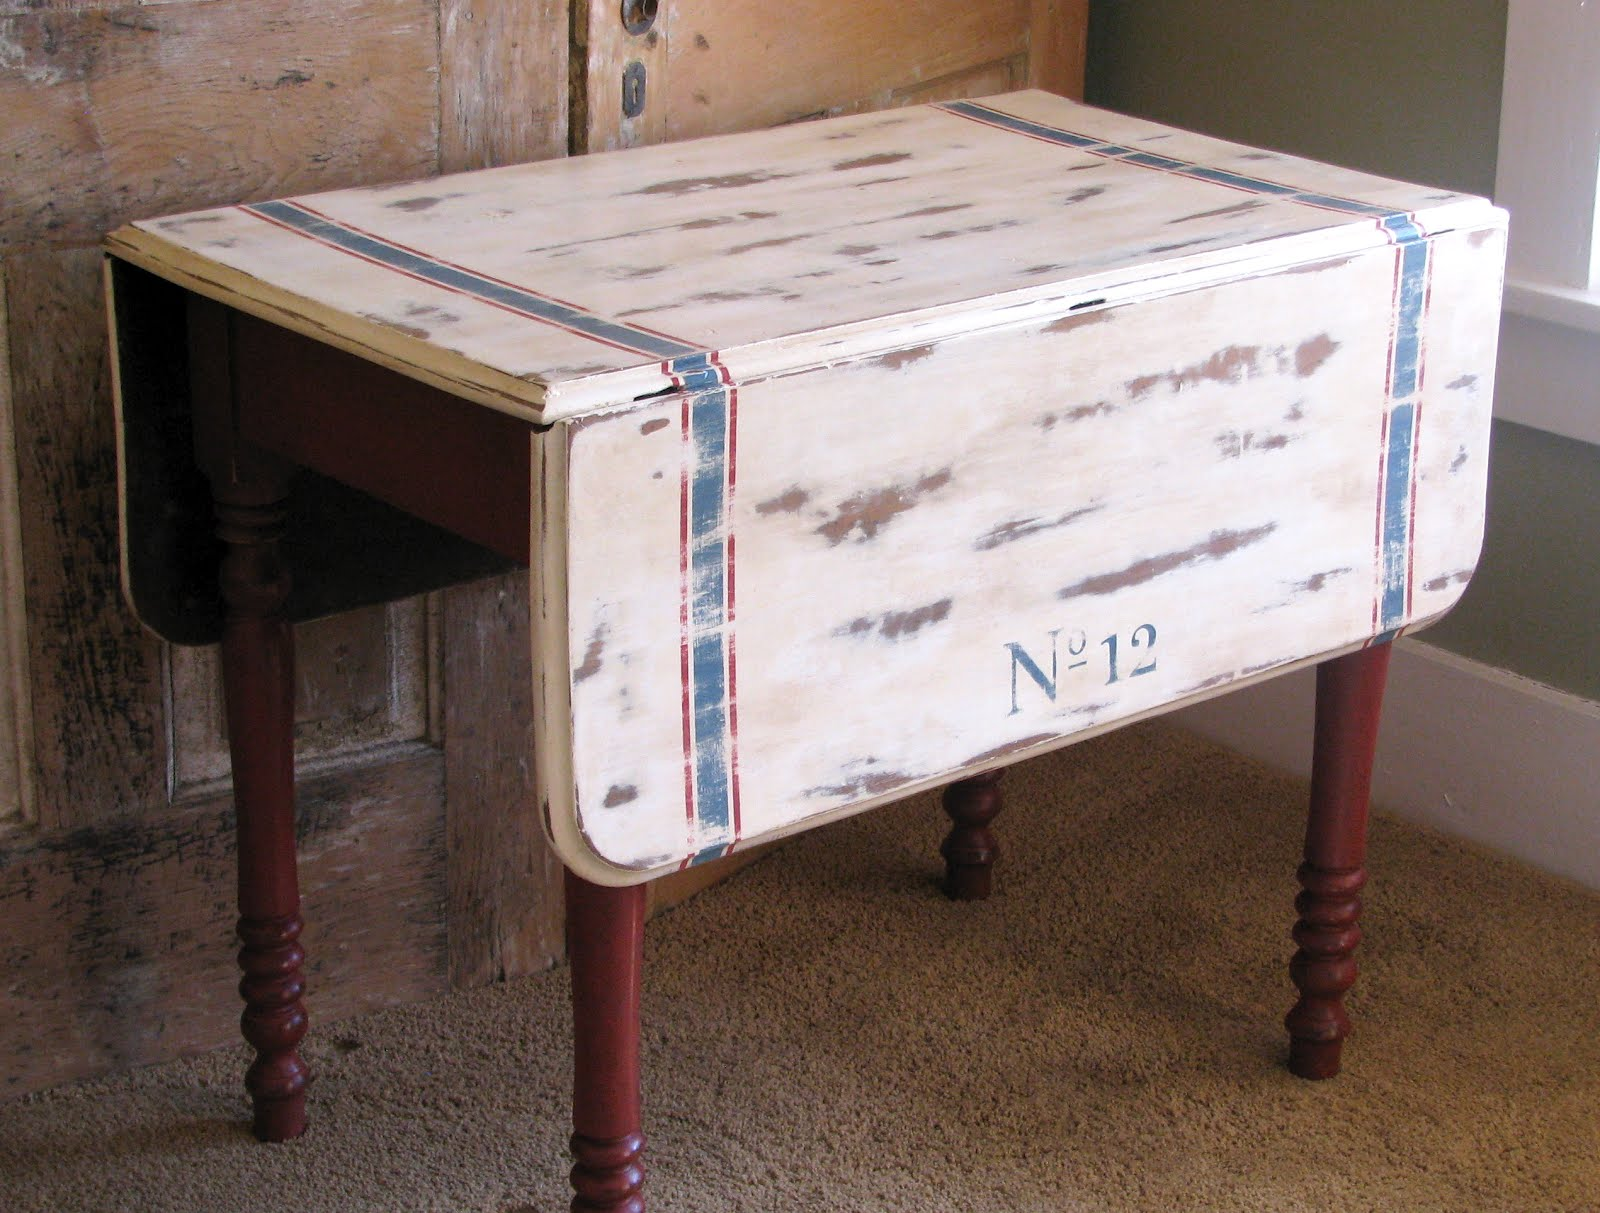 Popular I have been wanting to do a treatment like this on a drop leaf table for a long time